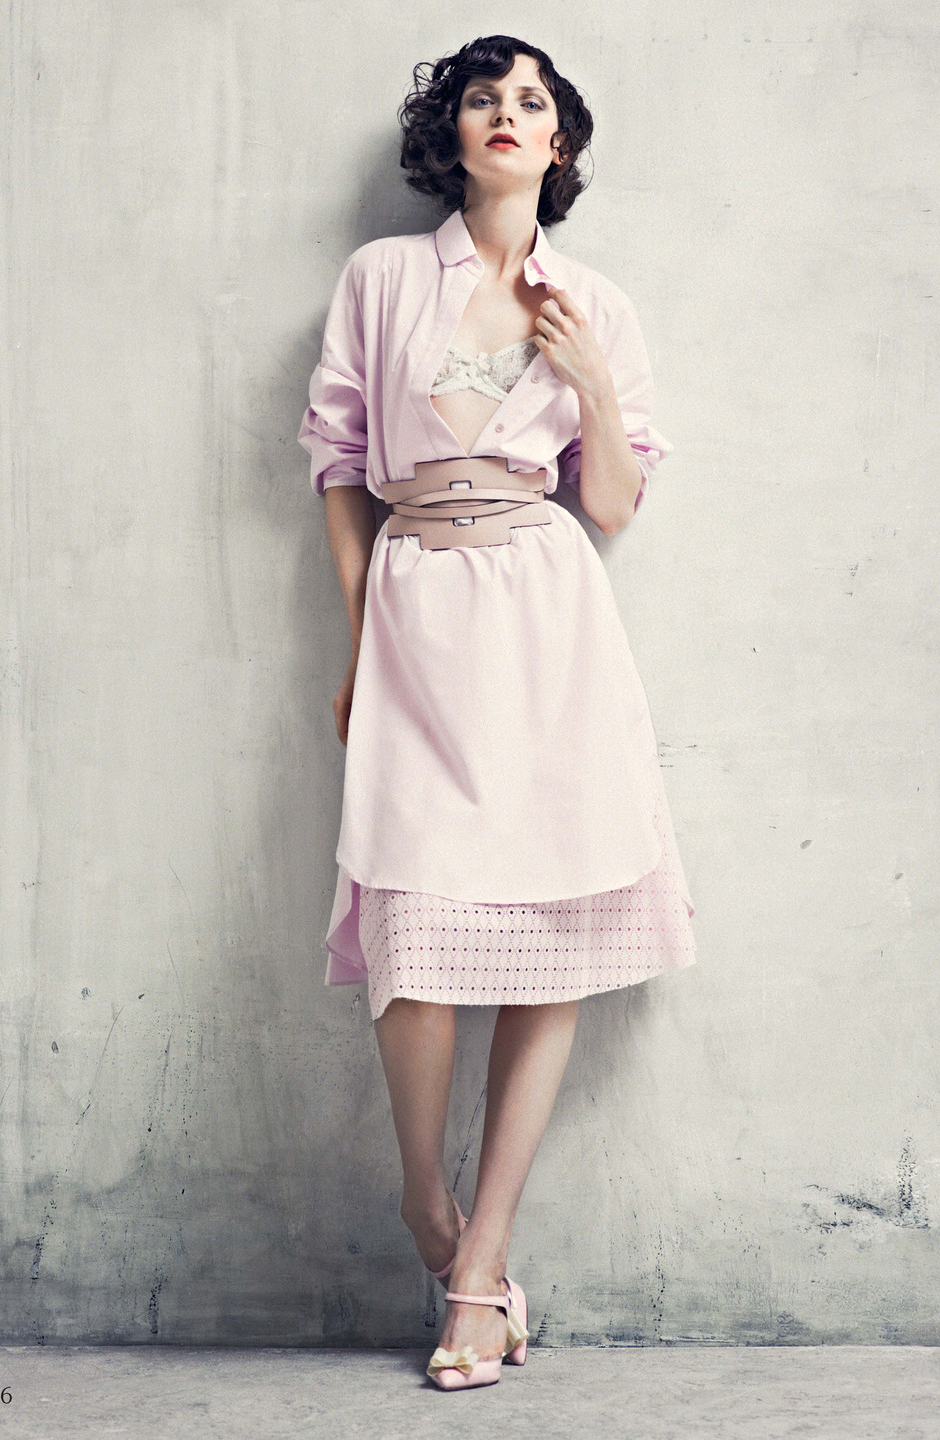 Maria Loks wearing Tod's dress in Shirtdress / How to spend it May 2014 (photography: David Ferrua, styling: Damian Foxe) / wardrobe essentials / history of shirtdress / shirtwaist dress story / via fashioned by love british fashion blog